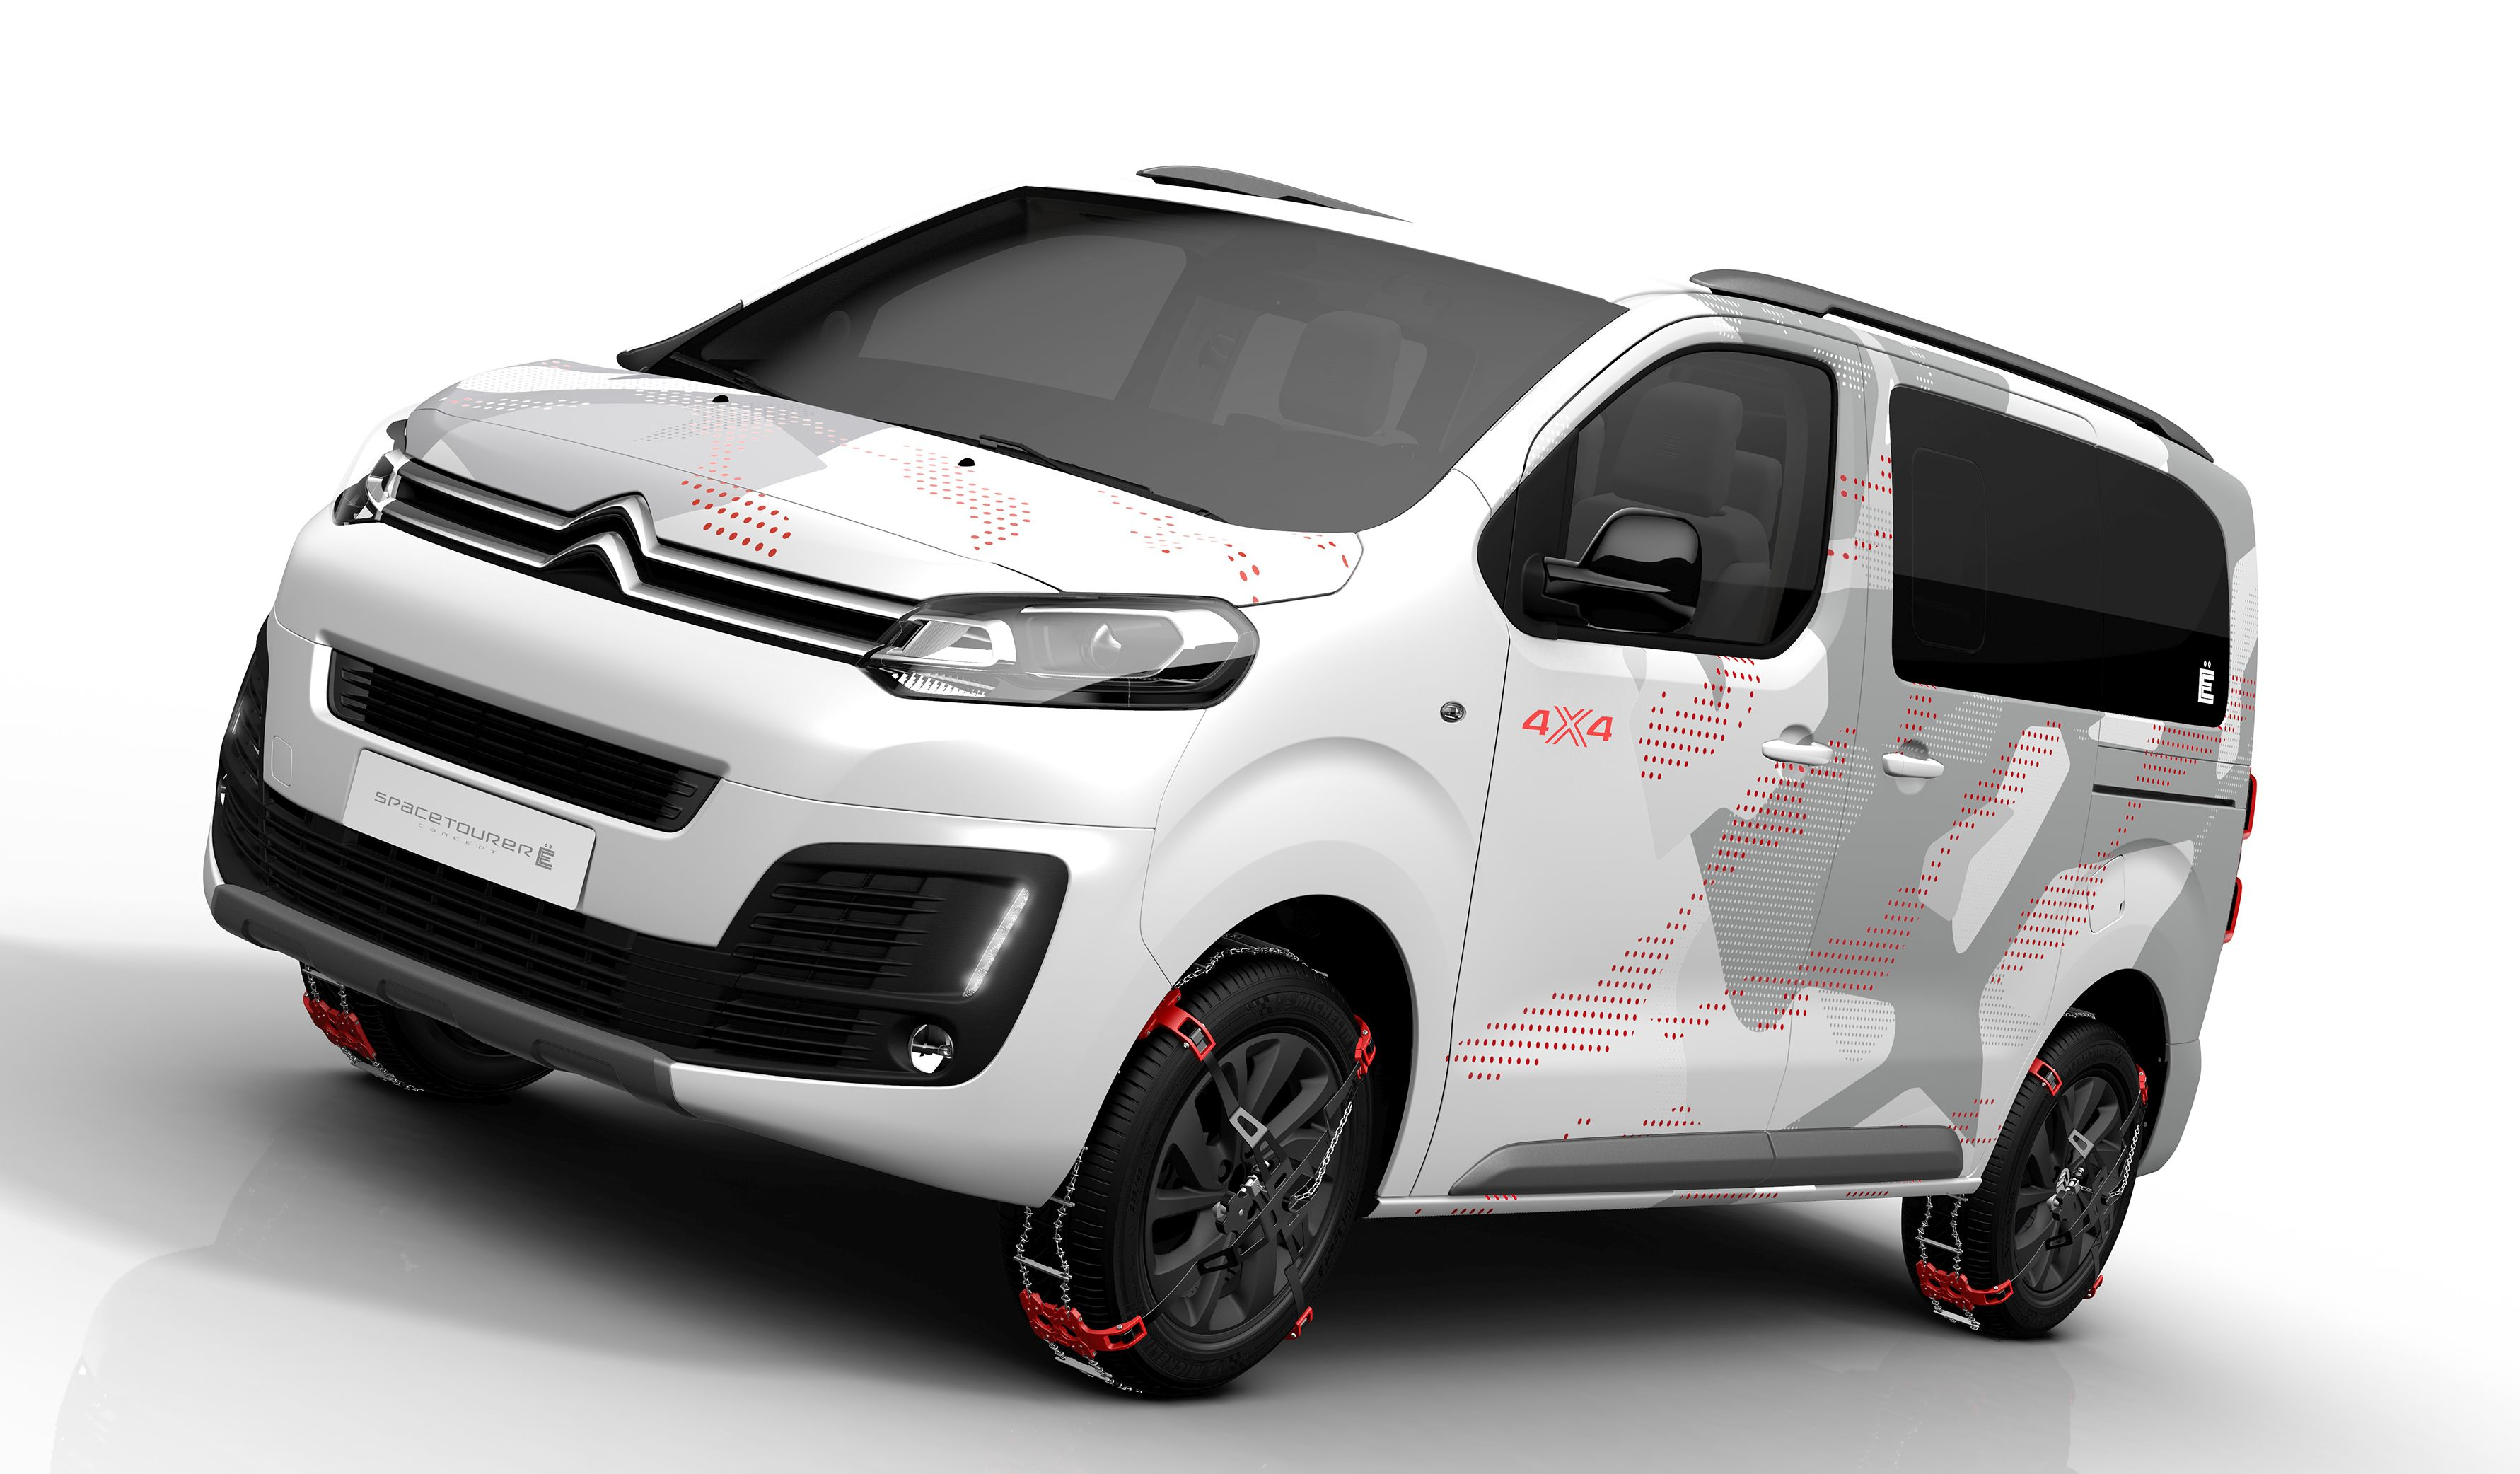 citroen spacetourer 4x4 e concept bound for geneva. Black Bedroom Furniture Sets. Home Design Ideas